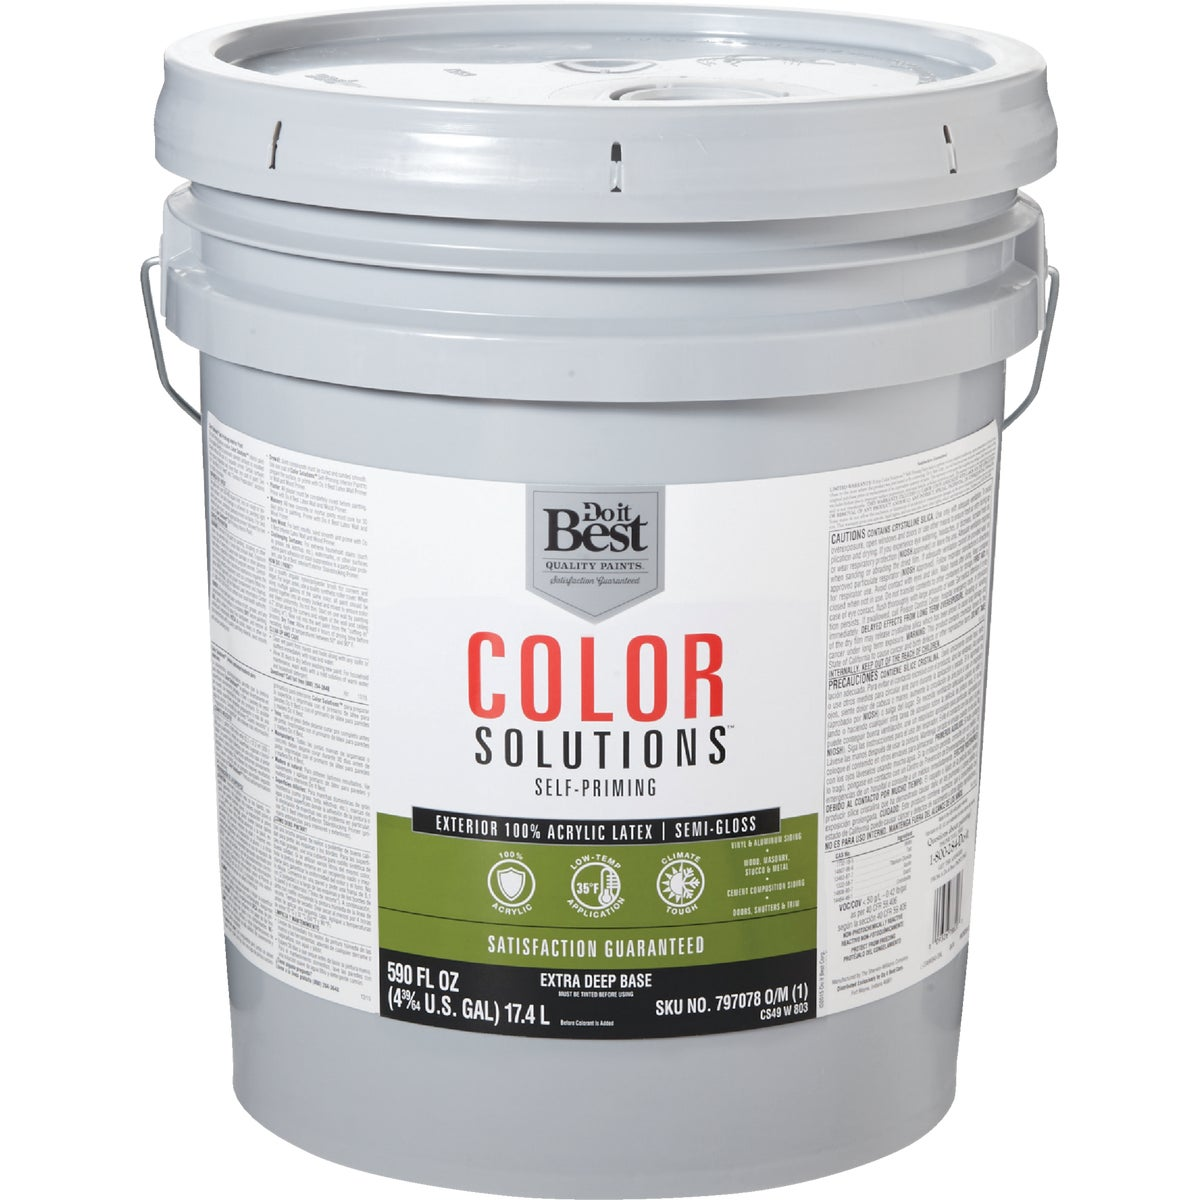 EXT S/G EX DEEP BS PAINT - CS49W0803-20 by Do it Best